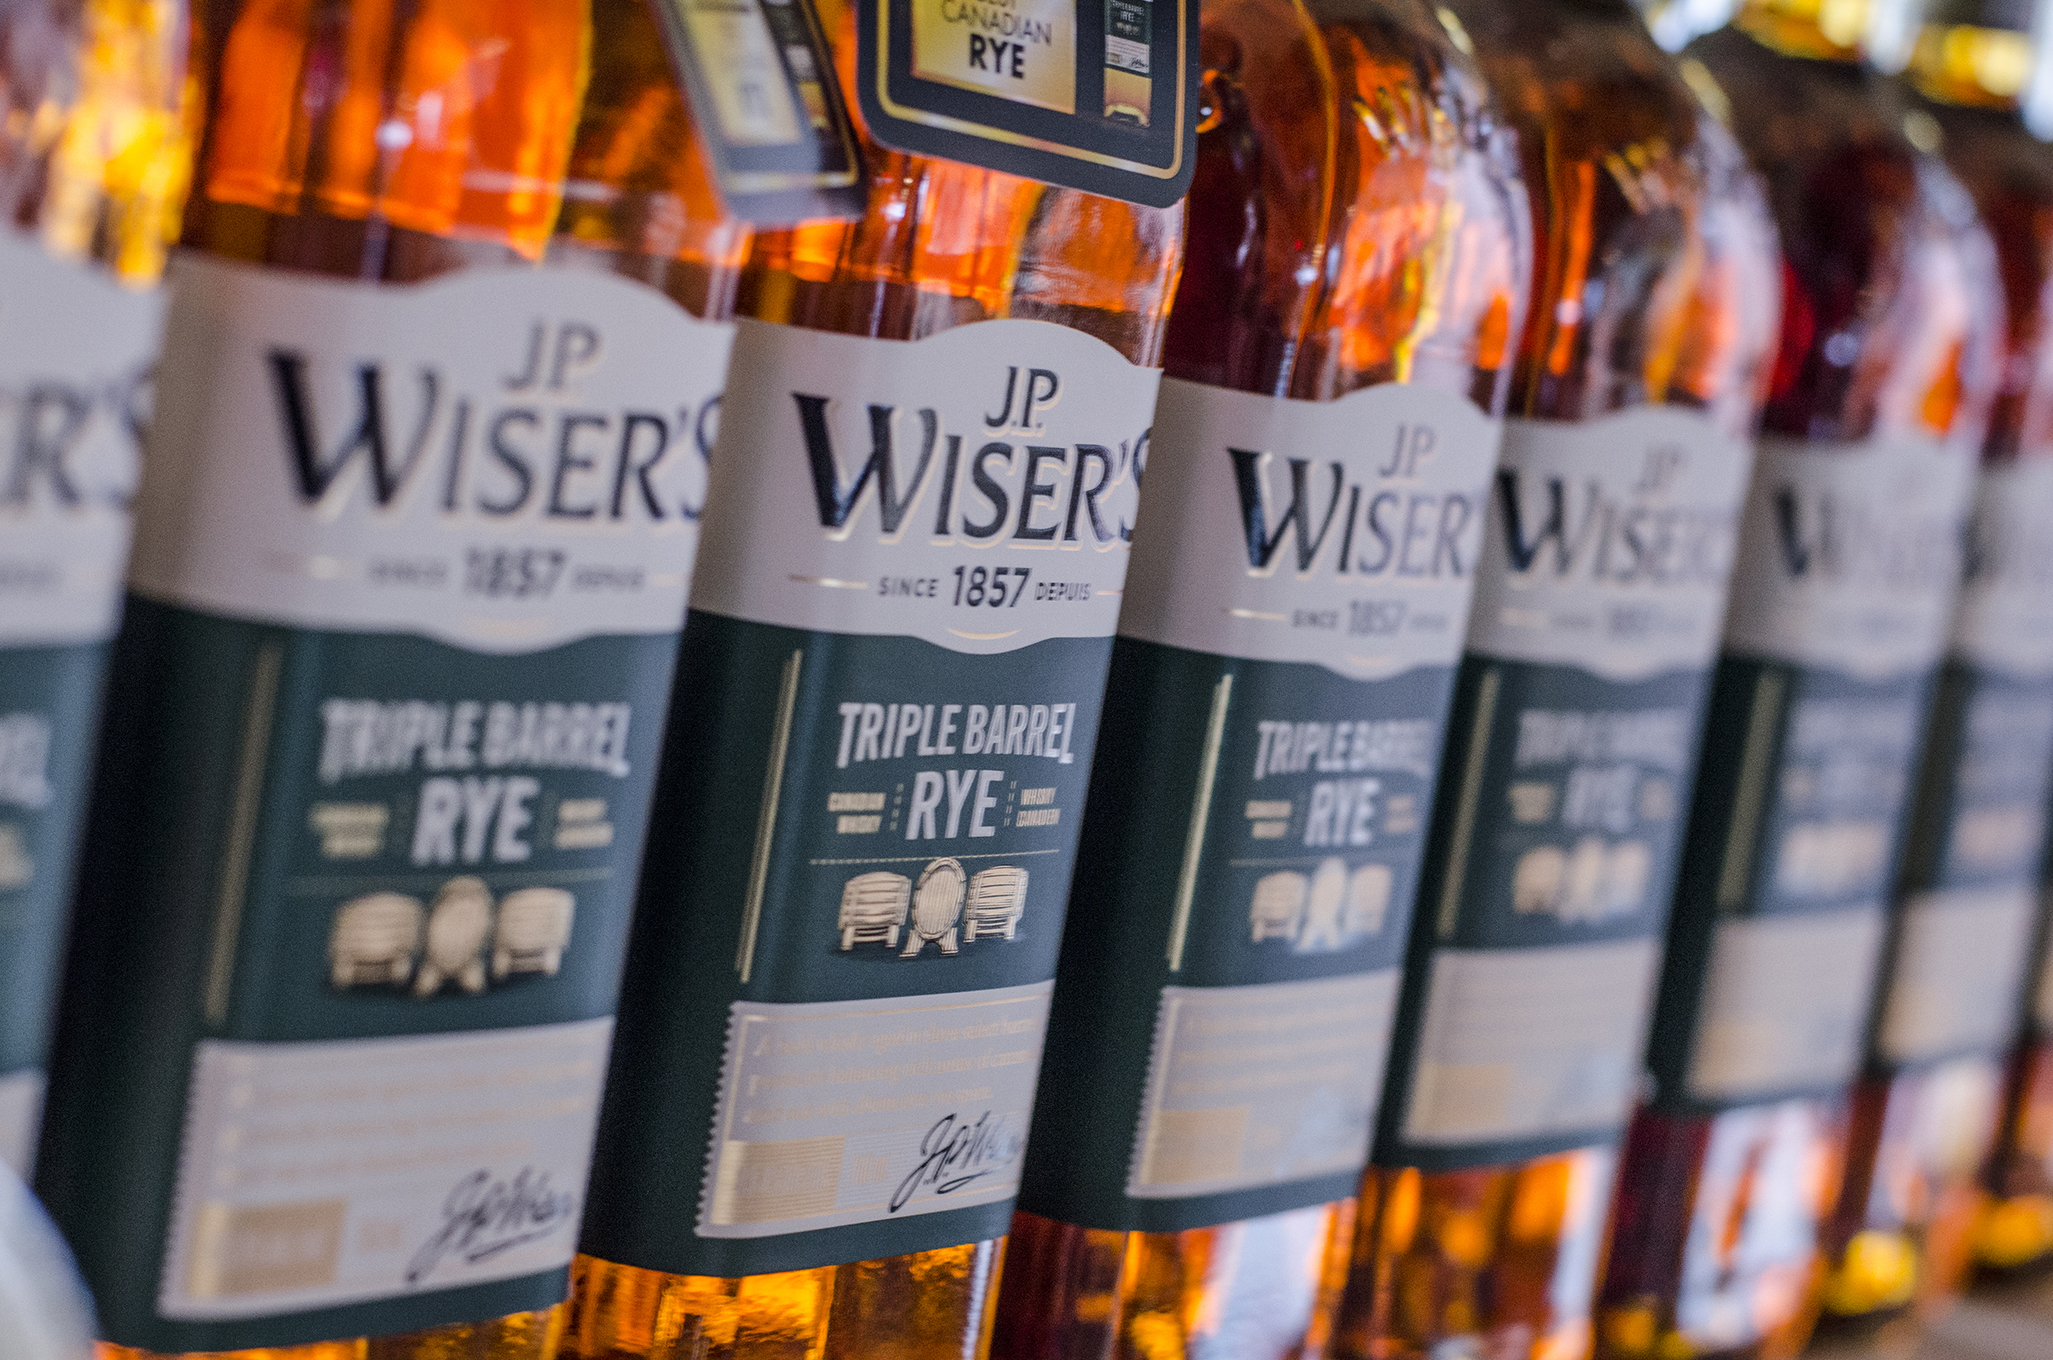 Triple Barrel Rye whisky from J.P. Wiser's in Windsor, Ontario.